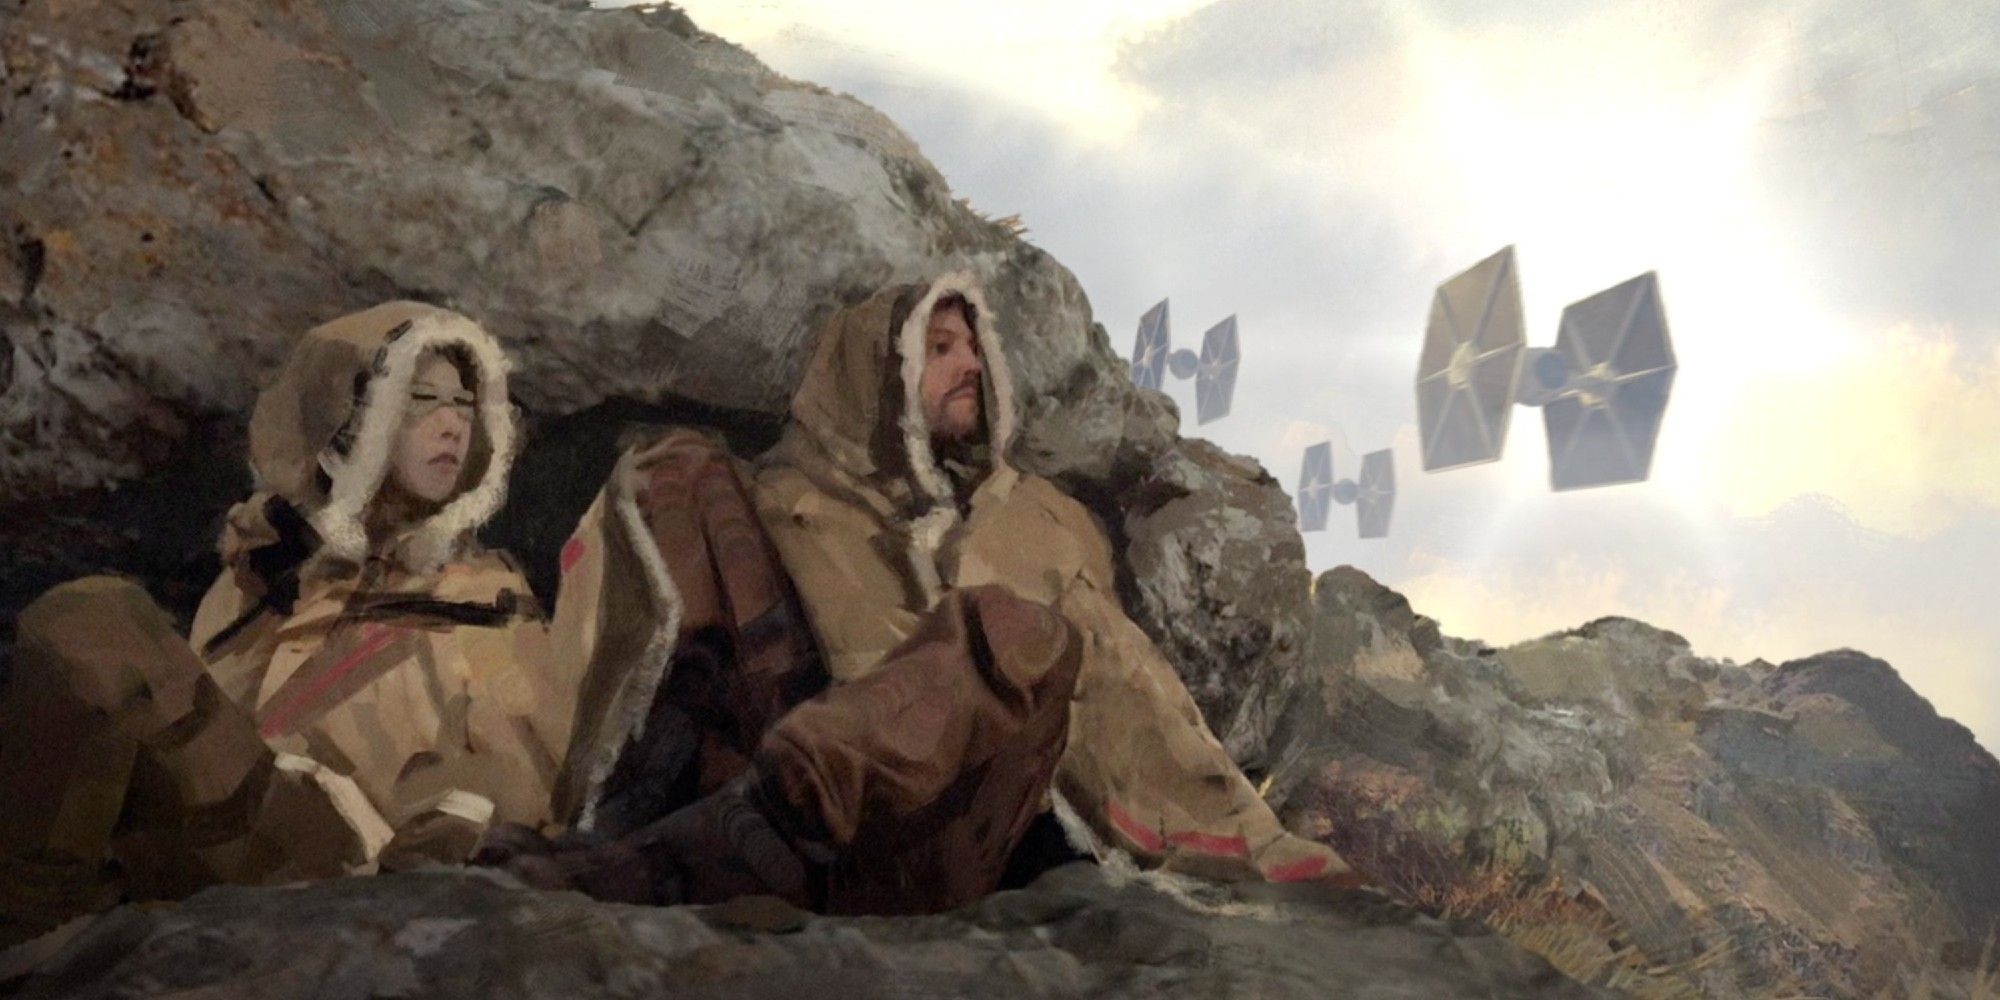 Cassian Andor Show Could Have Multiple Seasons According to Alan Tudyk